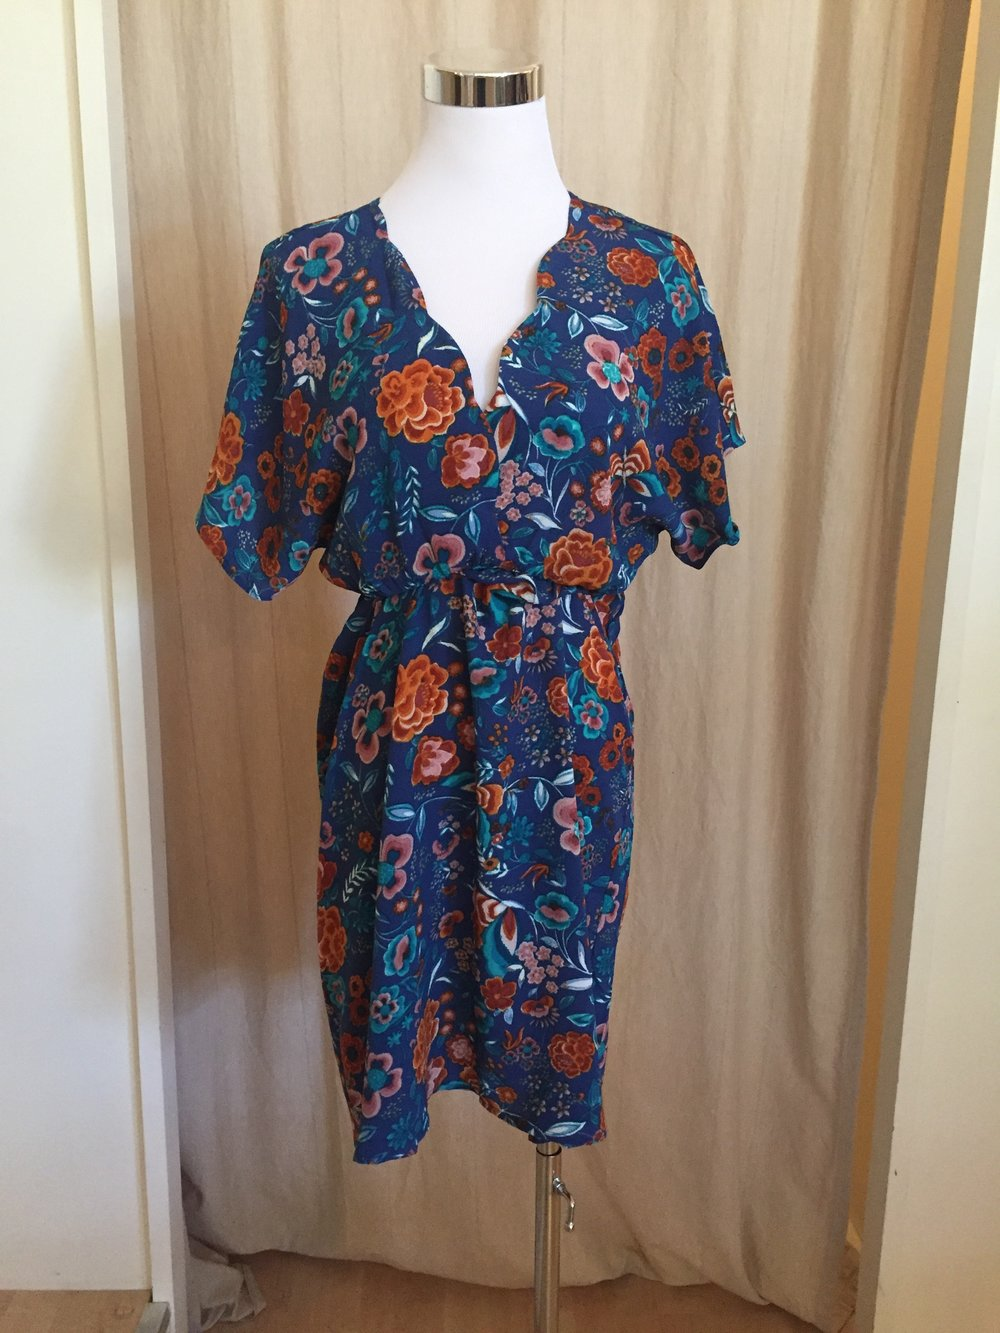 Cool Blue and Rust Floral Dress, $35